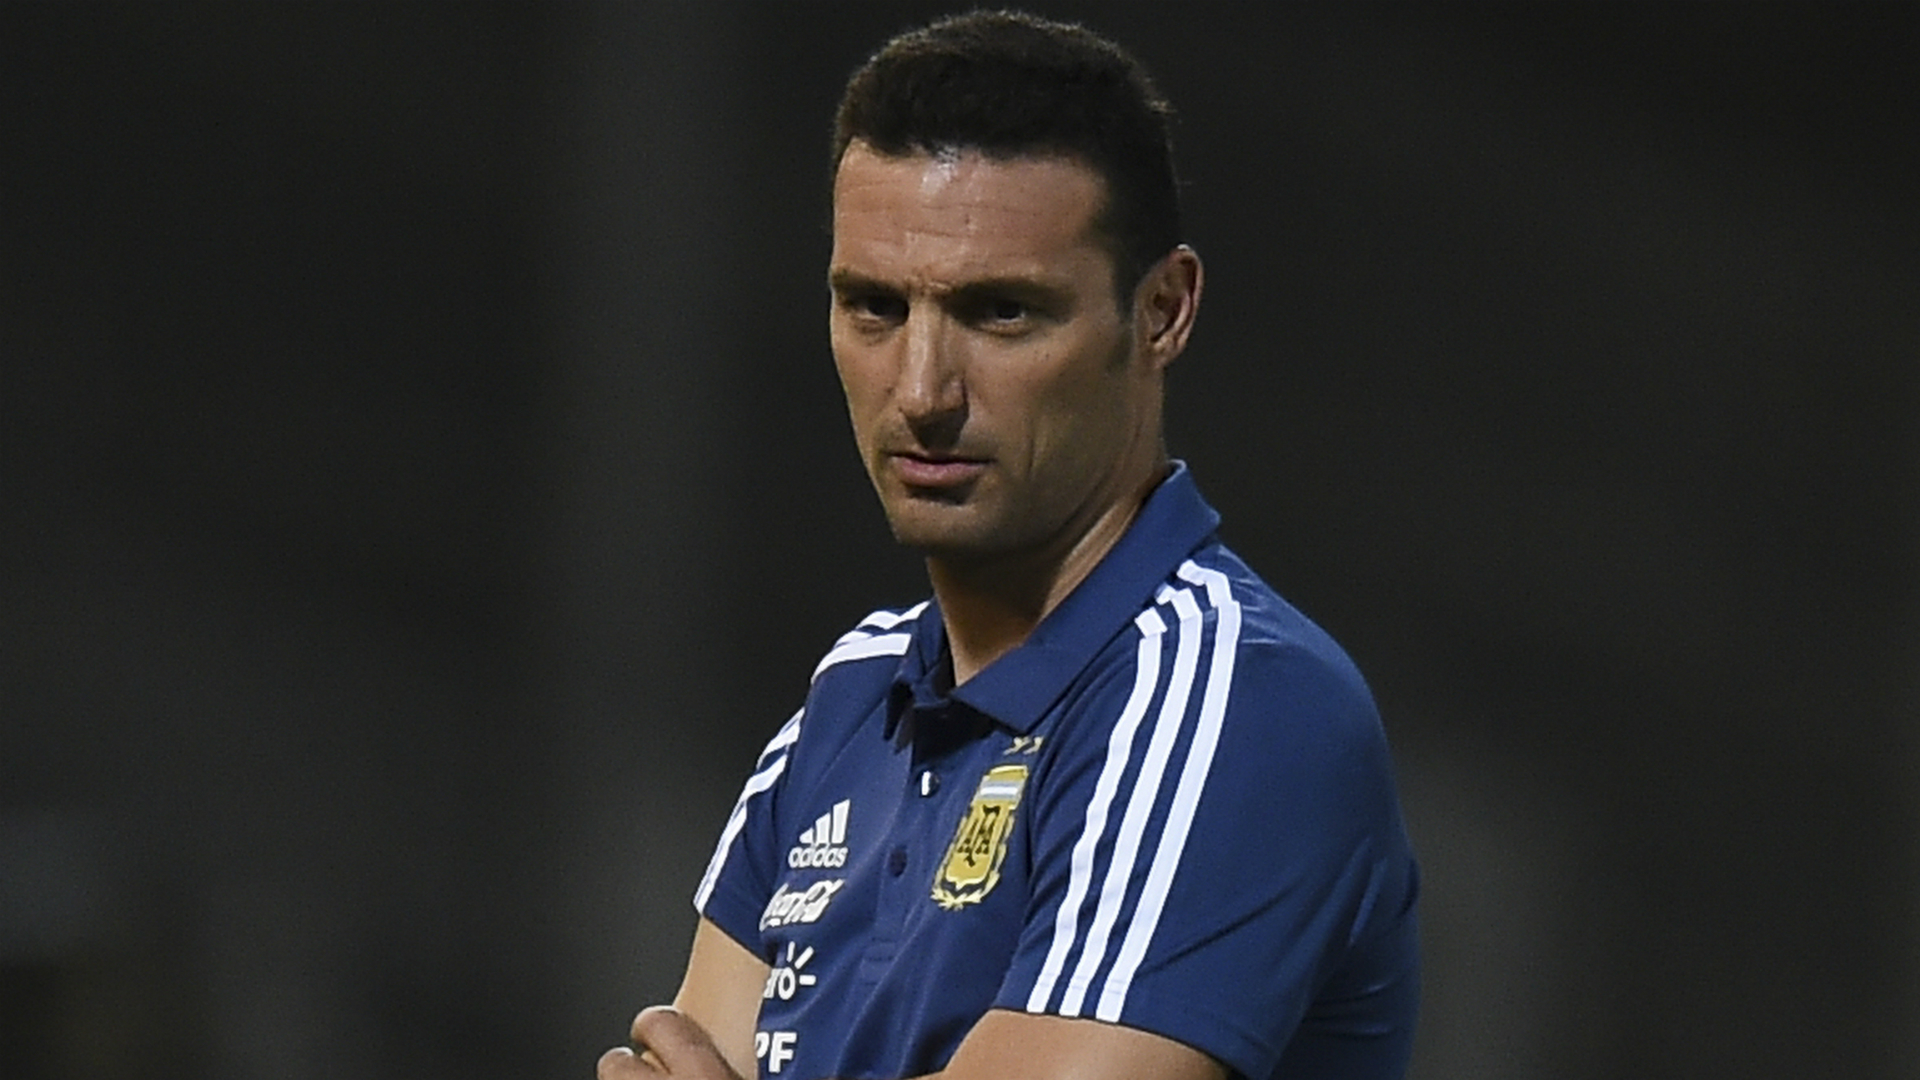 Argentina has strongest possible squad - Scaloni